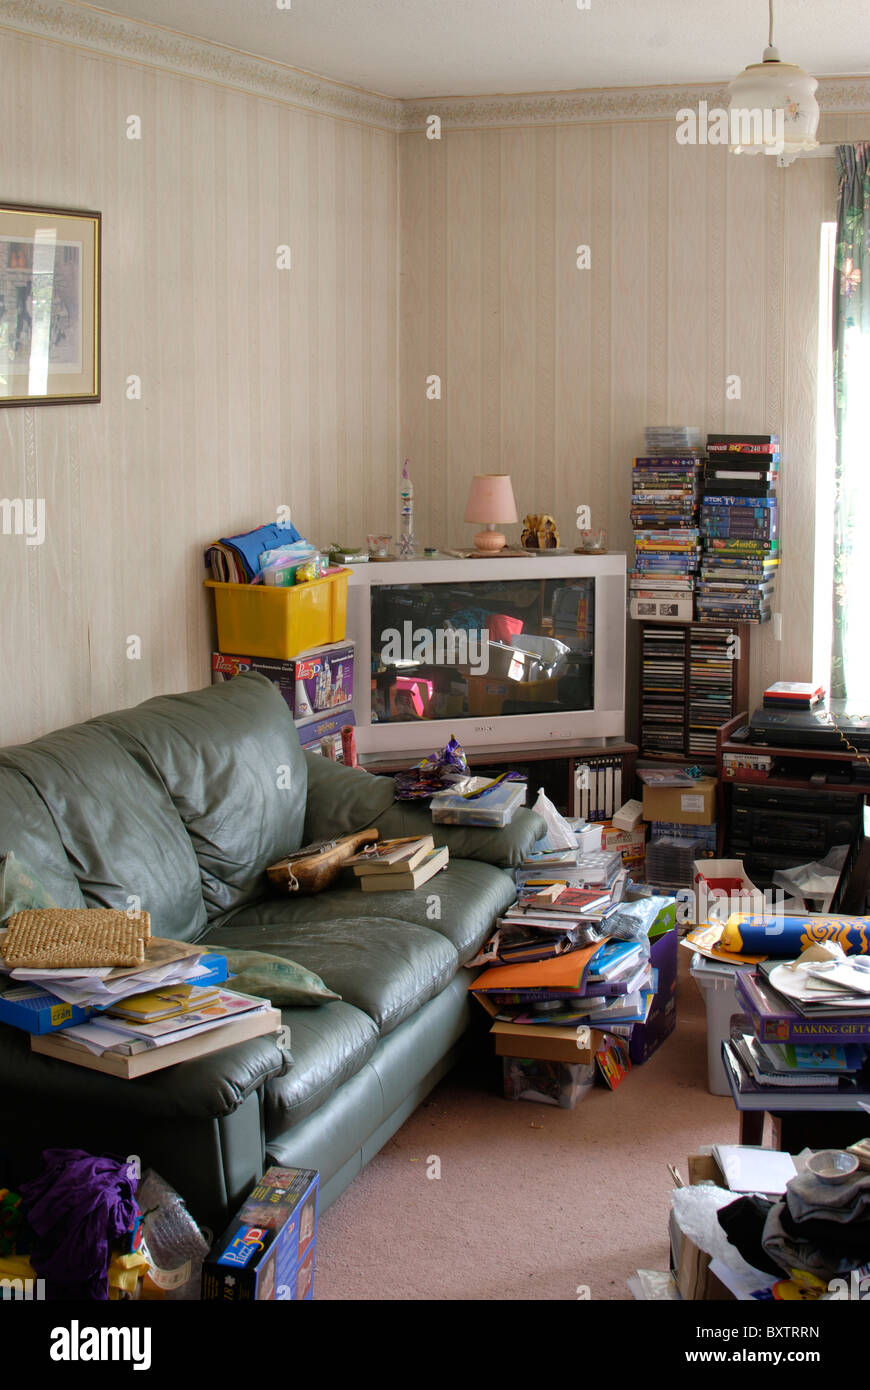 Untidy Living Room